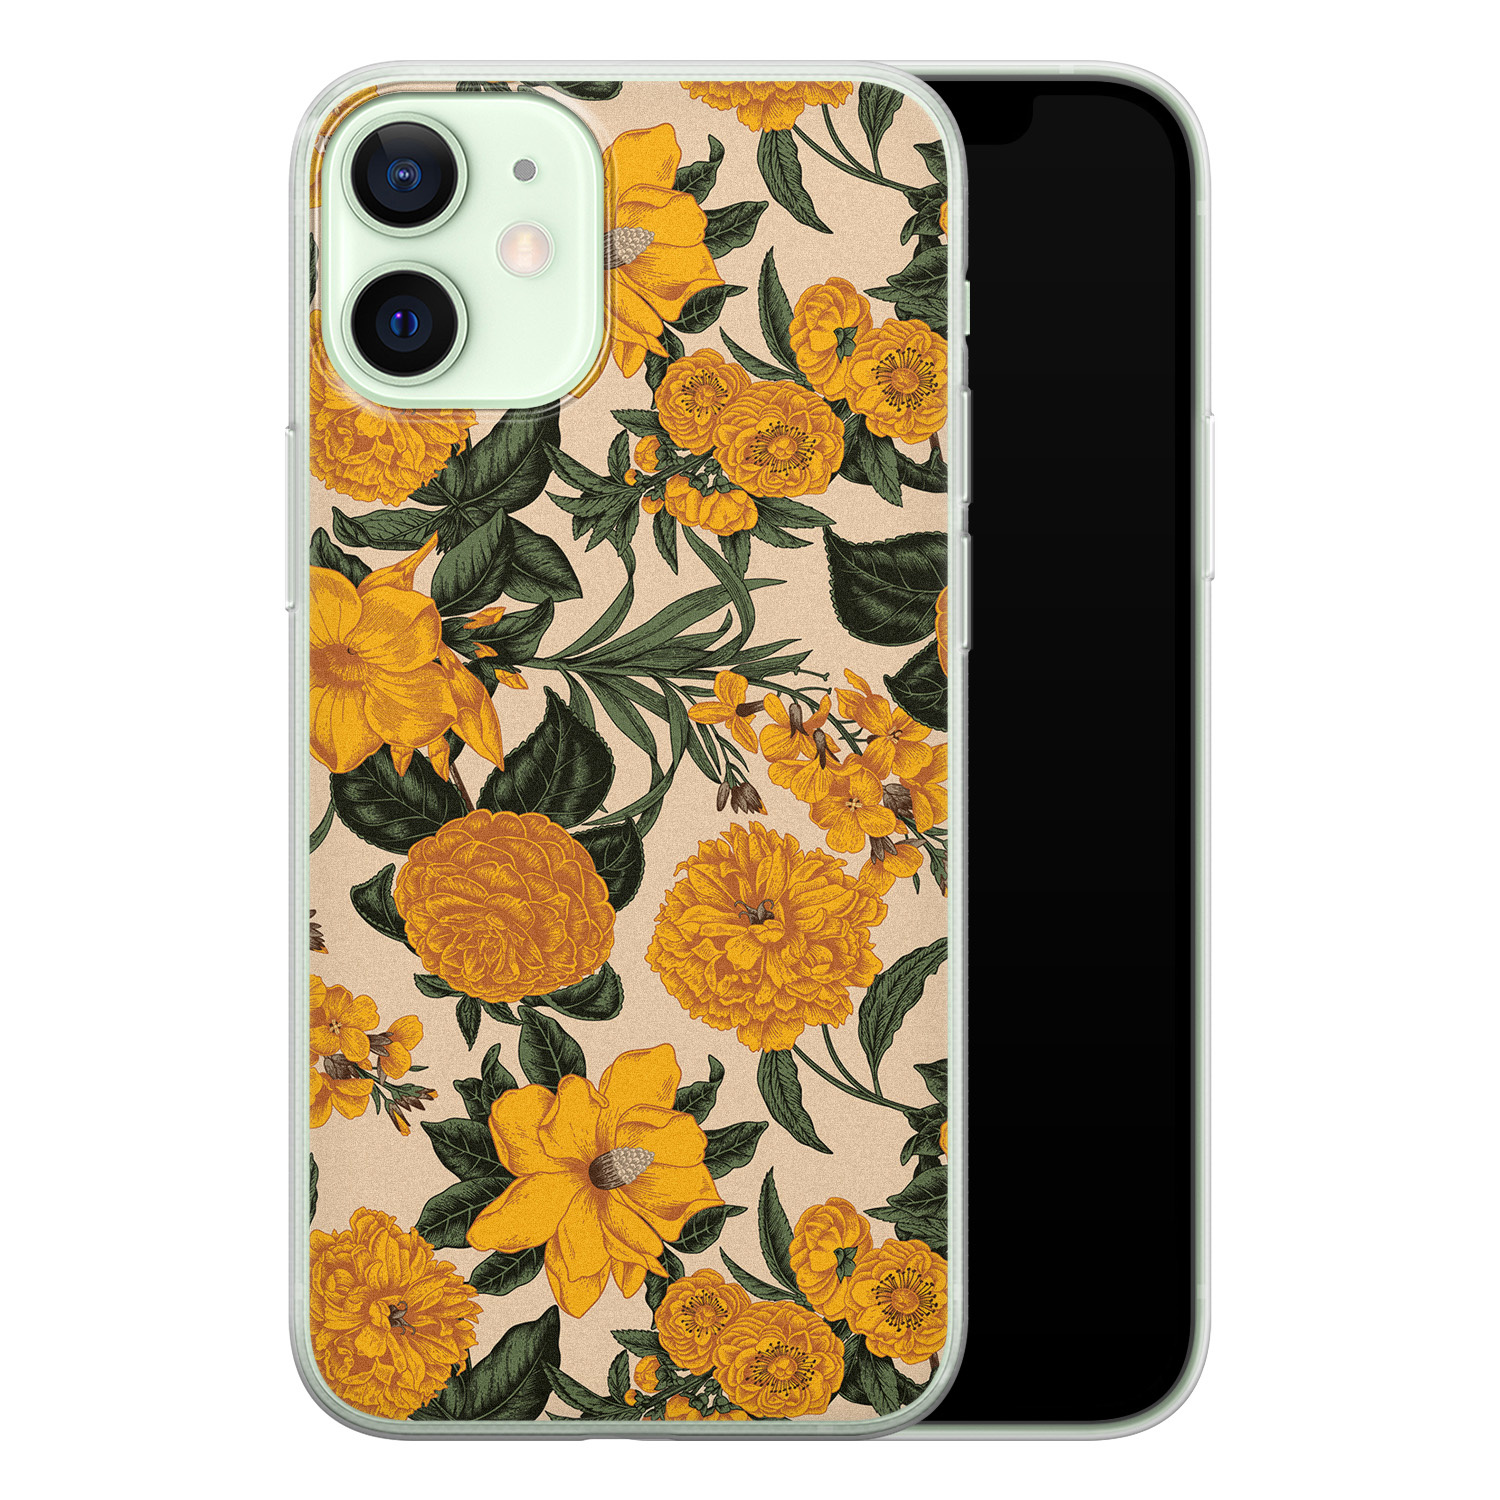 iPhone 12 mini siliconen hoesje - Retro flowers